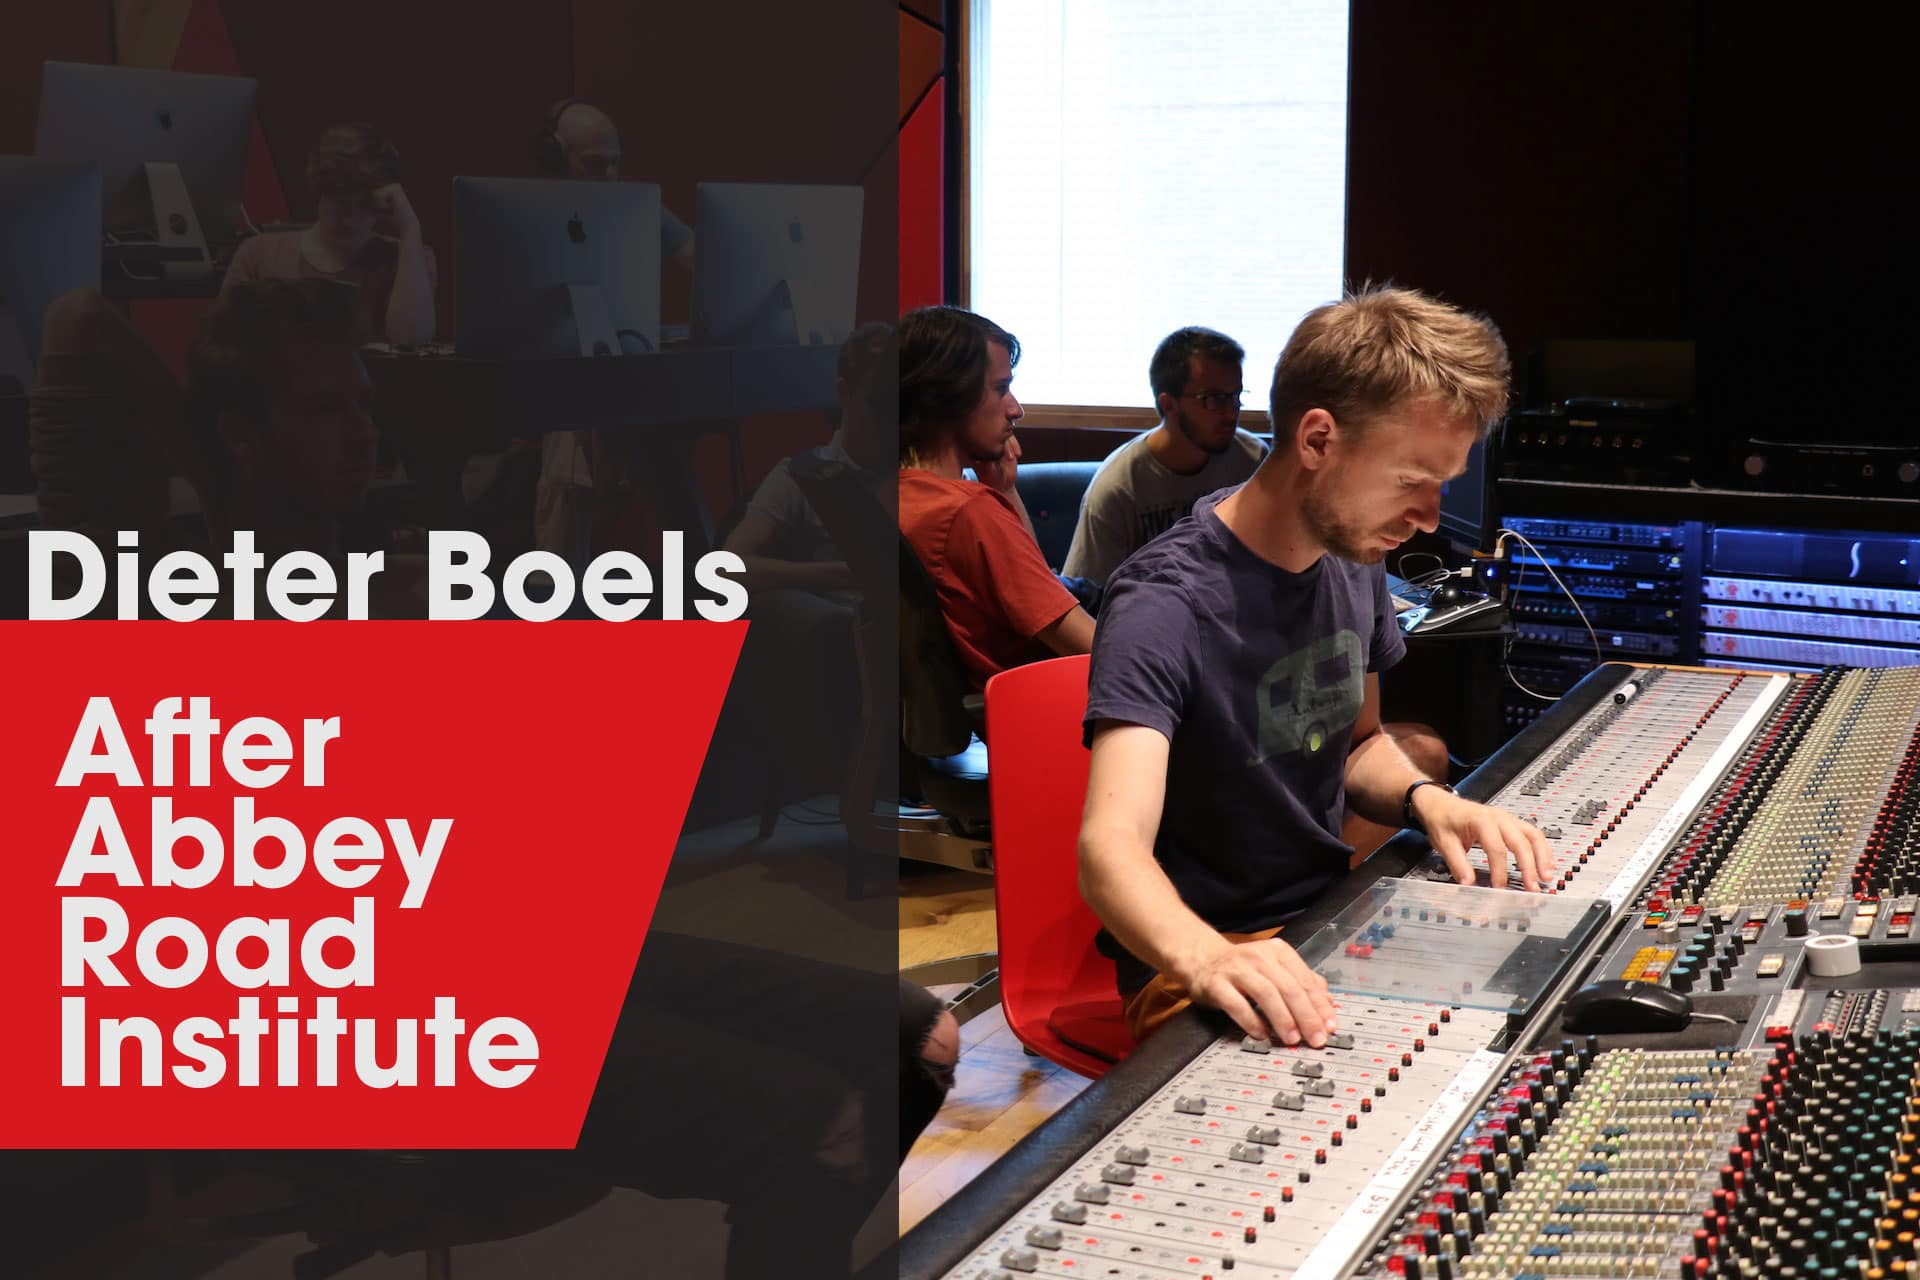 Dieter Boels Abbey Road Institute